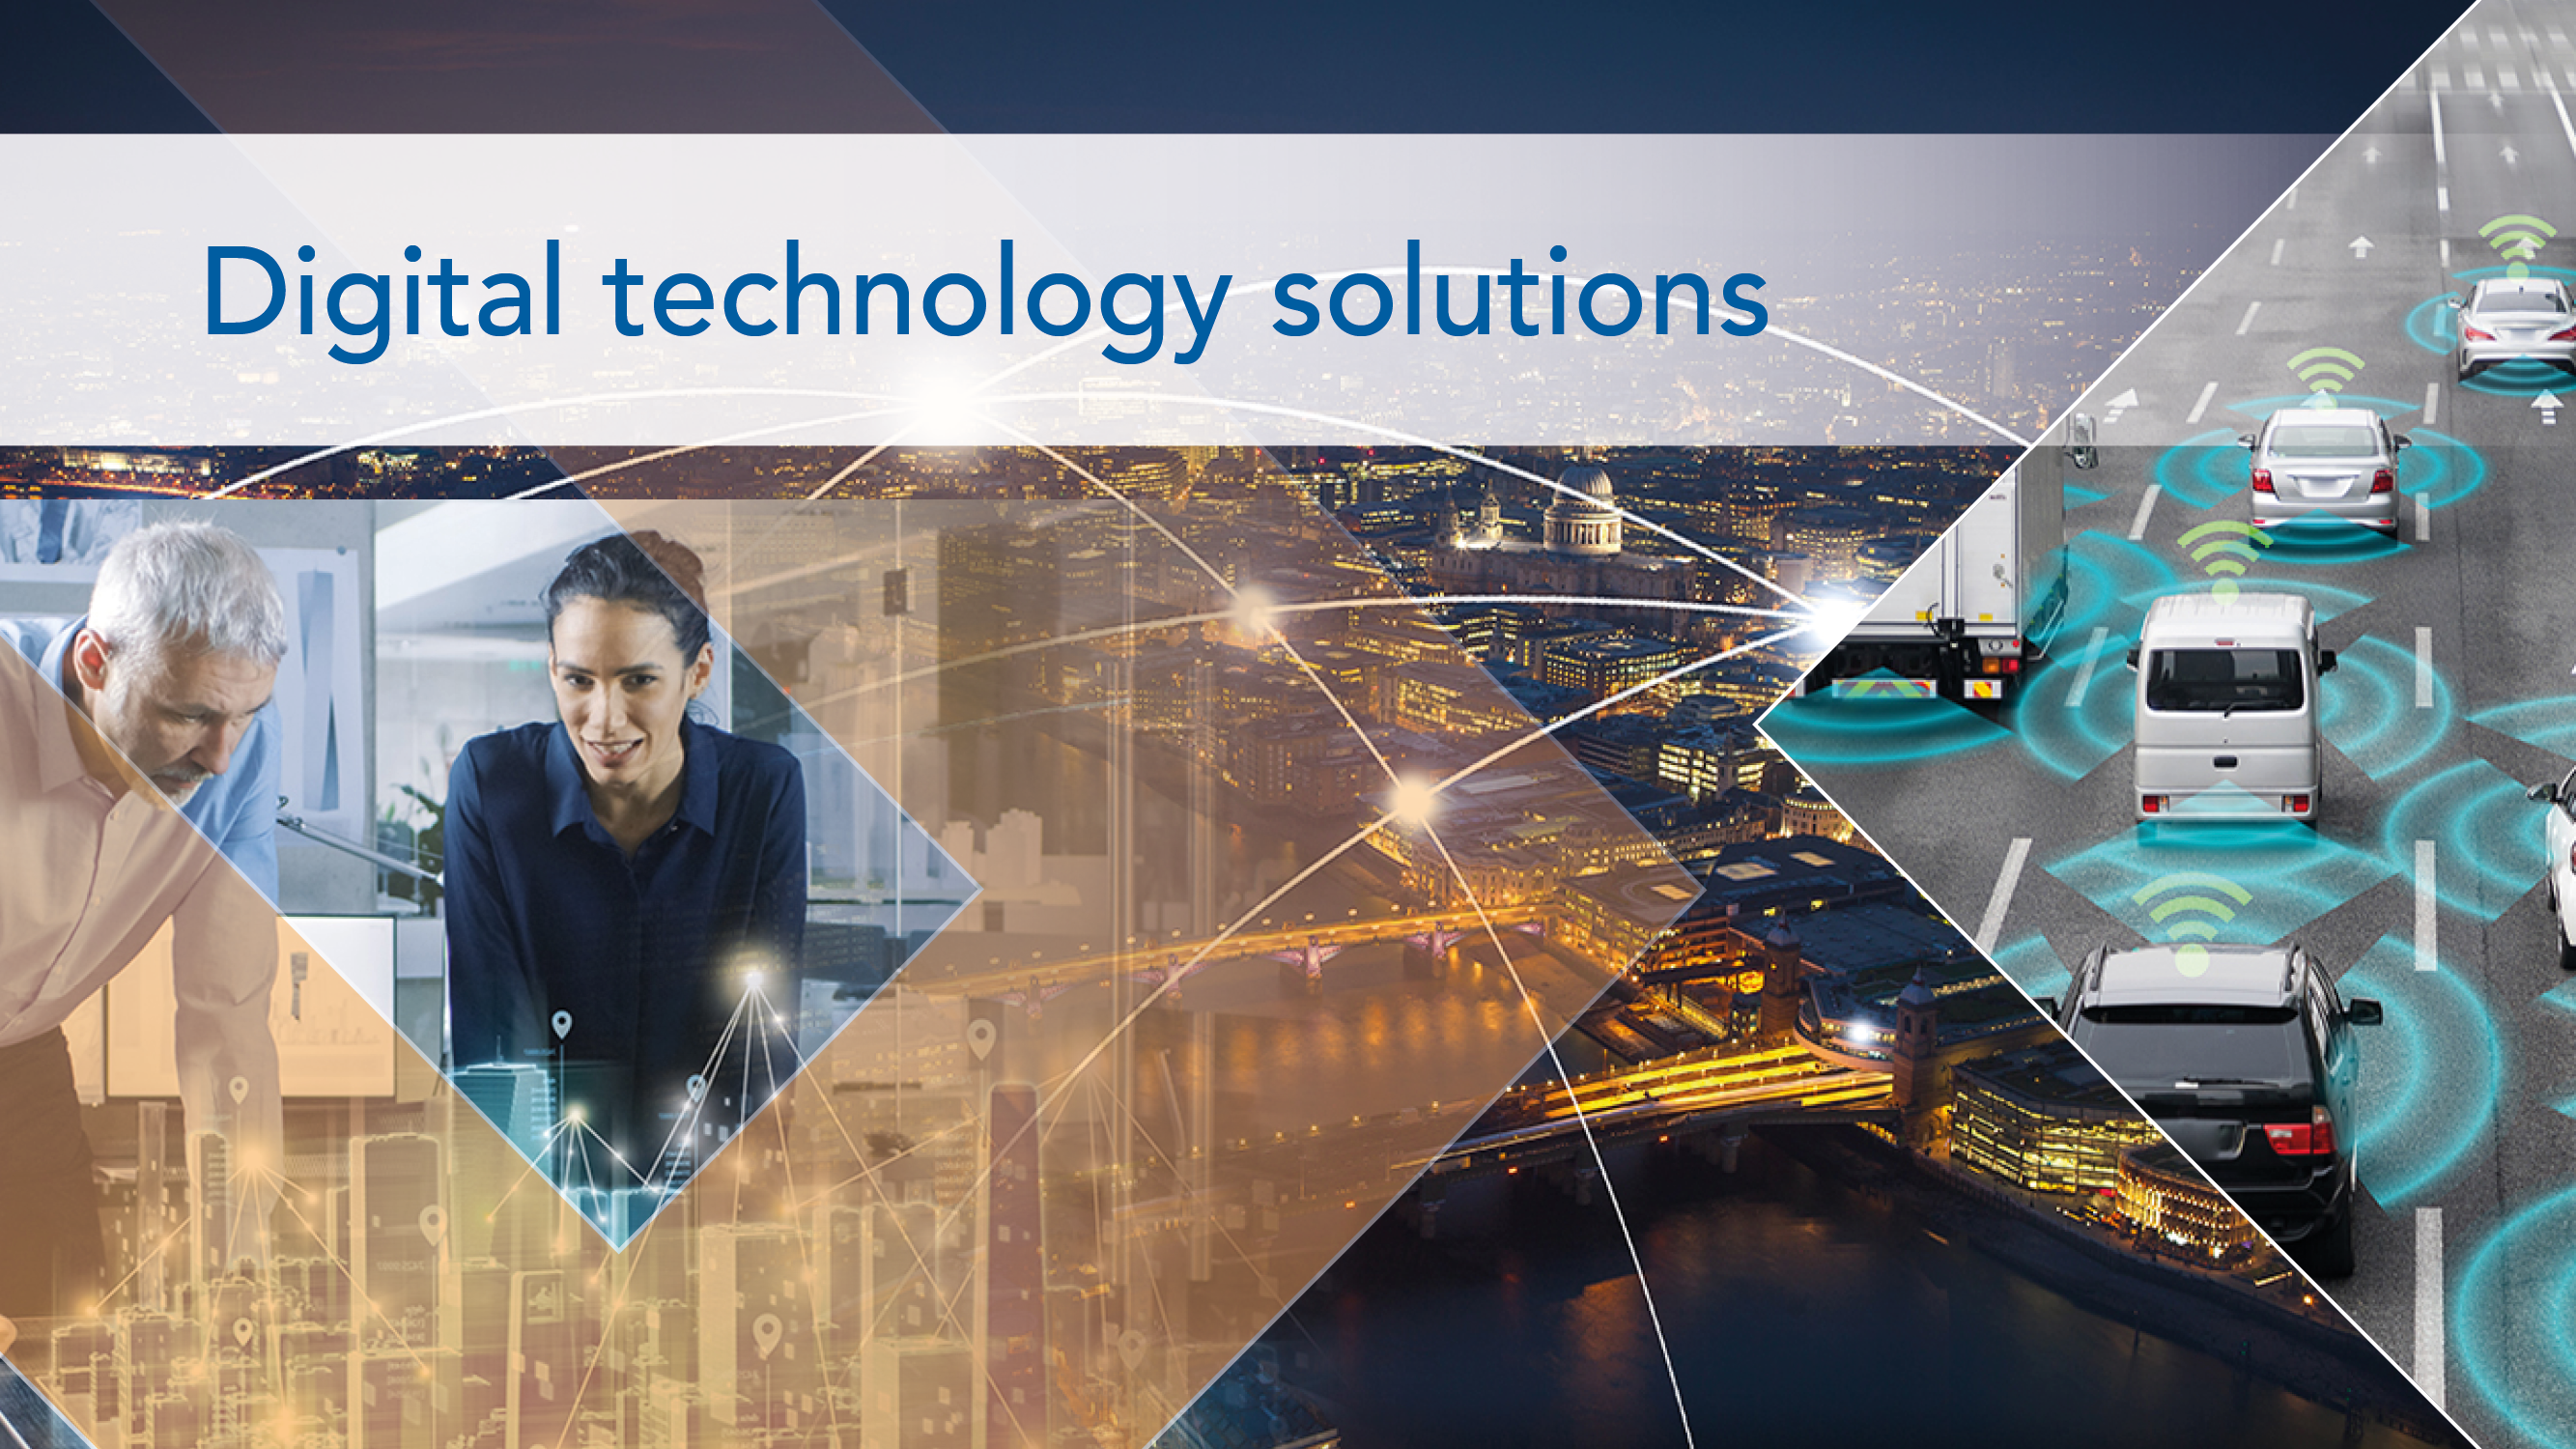 Costain digital technology solutions